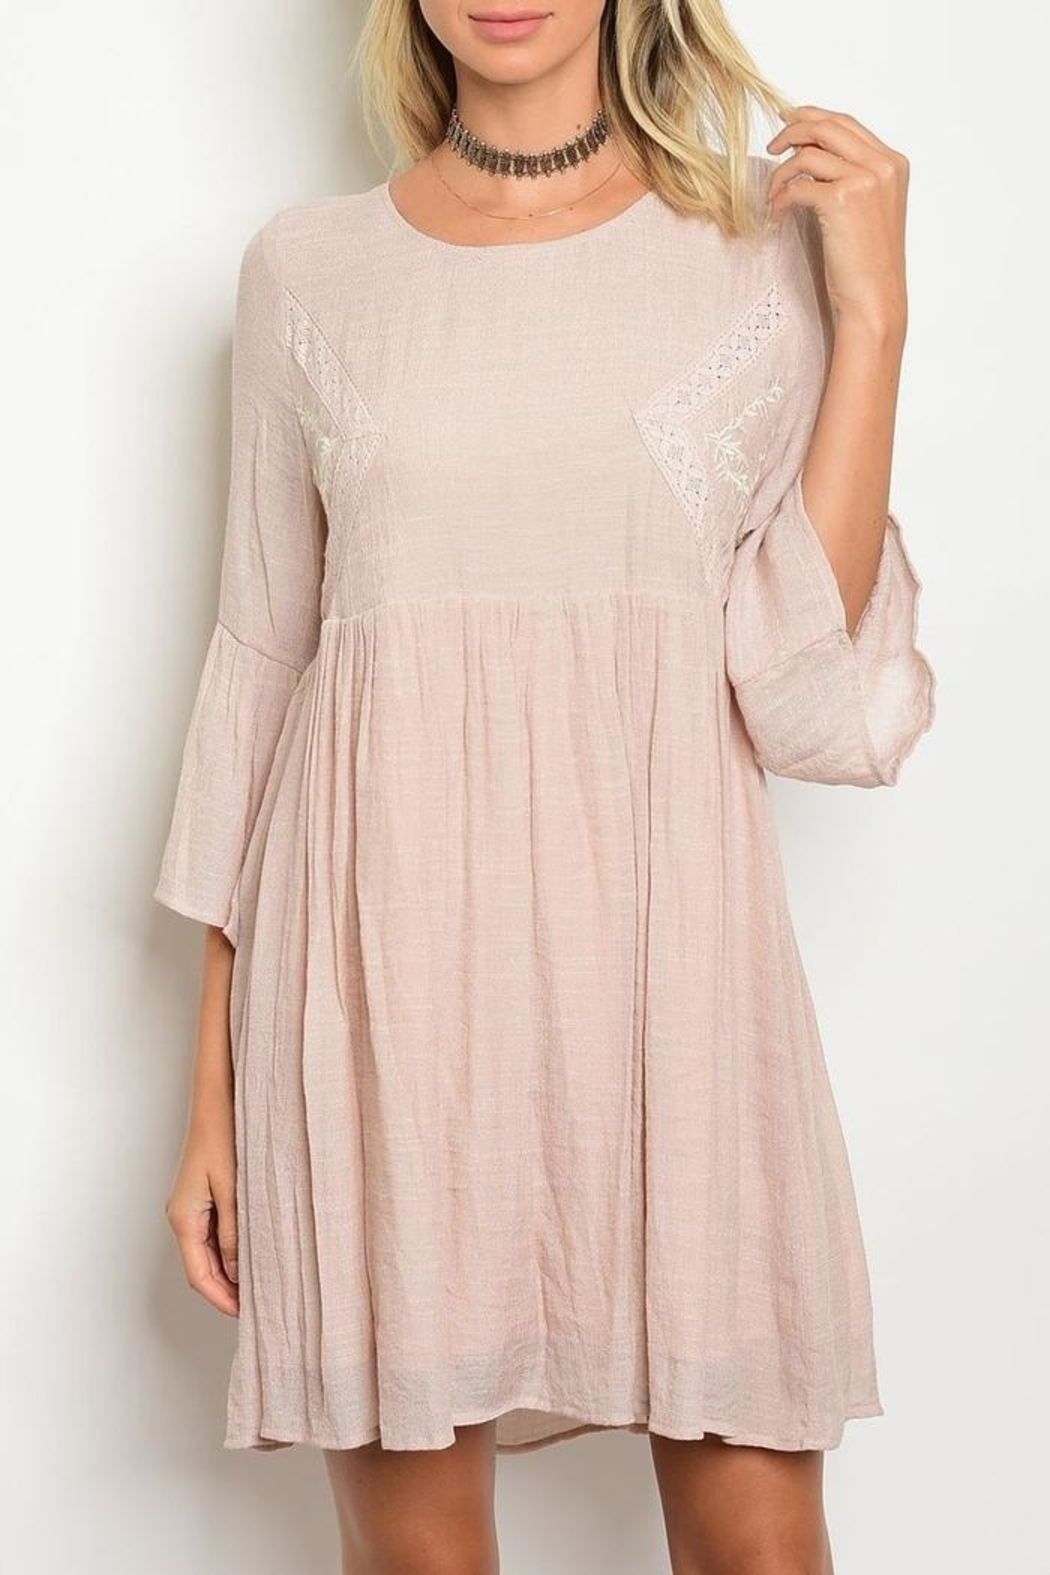 Tassels N Lace Mineral Wash Dress - Main Image